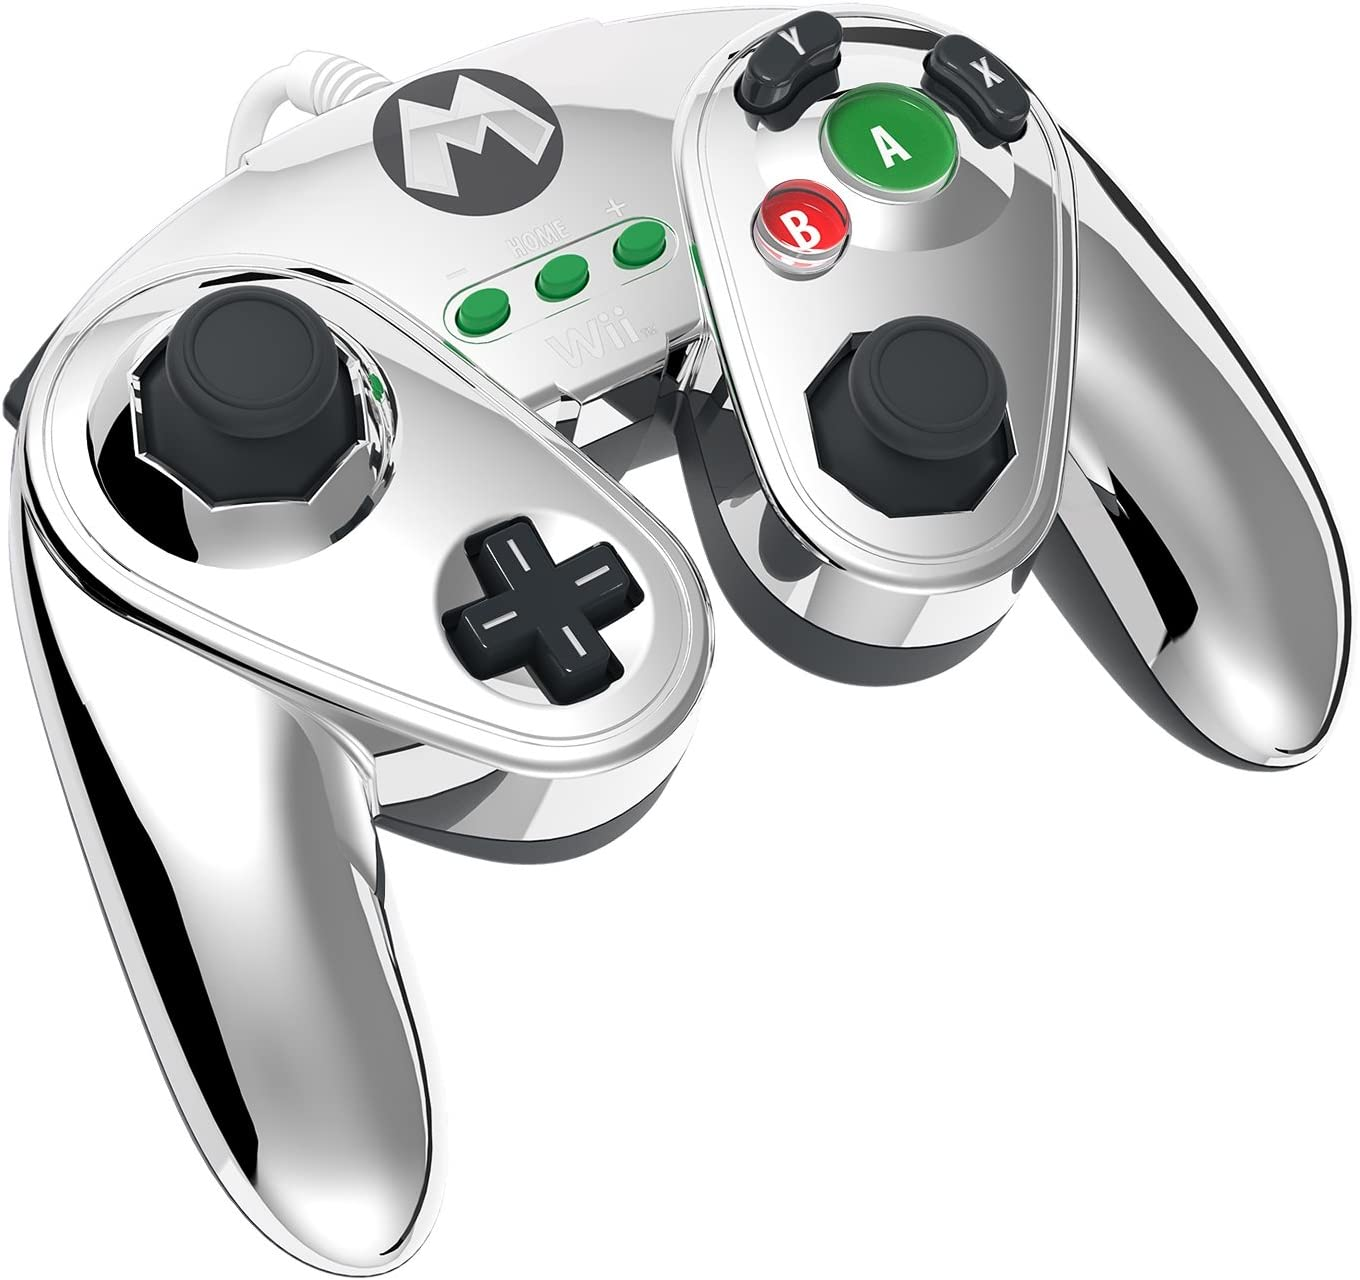 Pdp Wired Fight Pad For Wii U Metal Mario Nintendo Gamecube Controller Wiring Diagram Right Stick Video Games